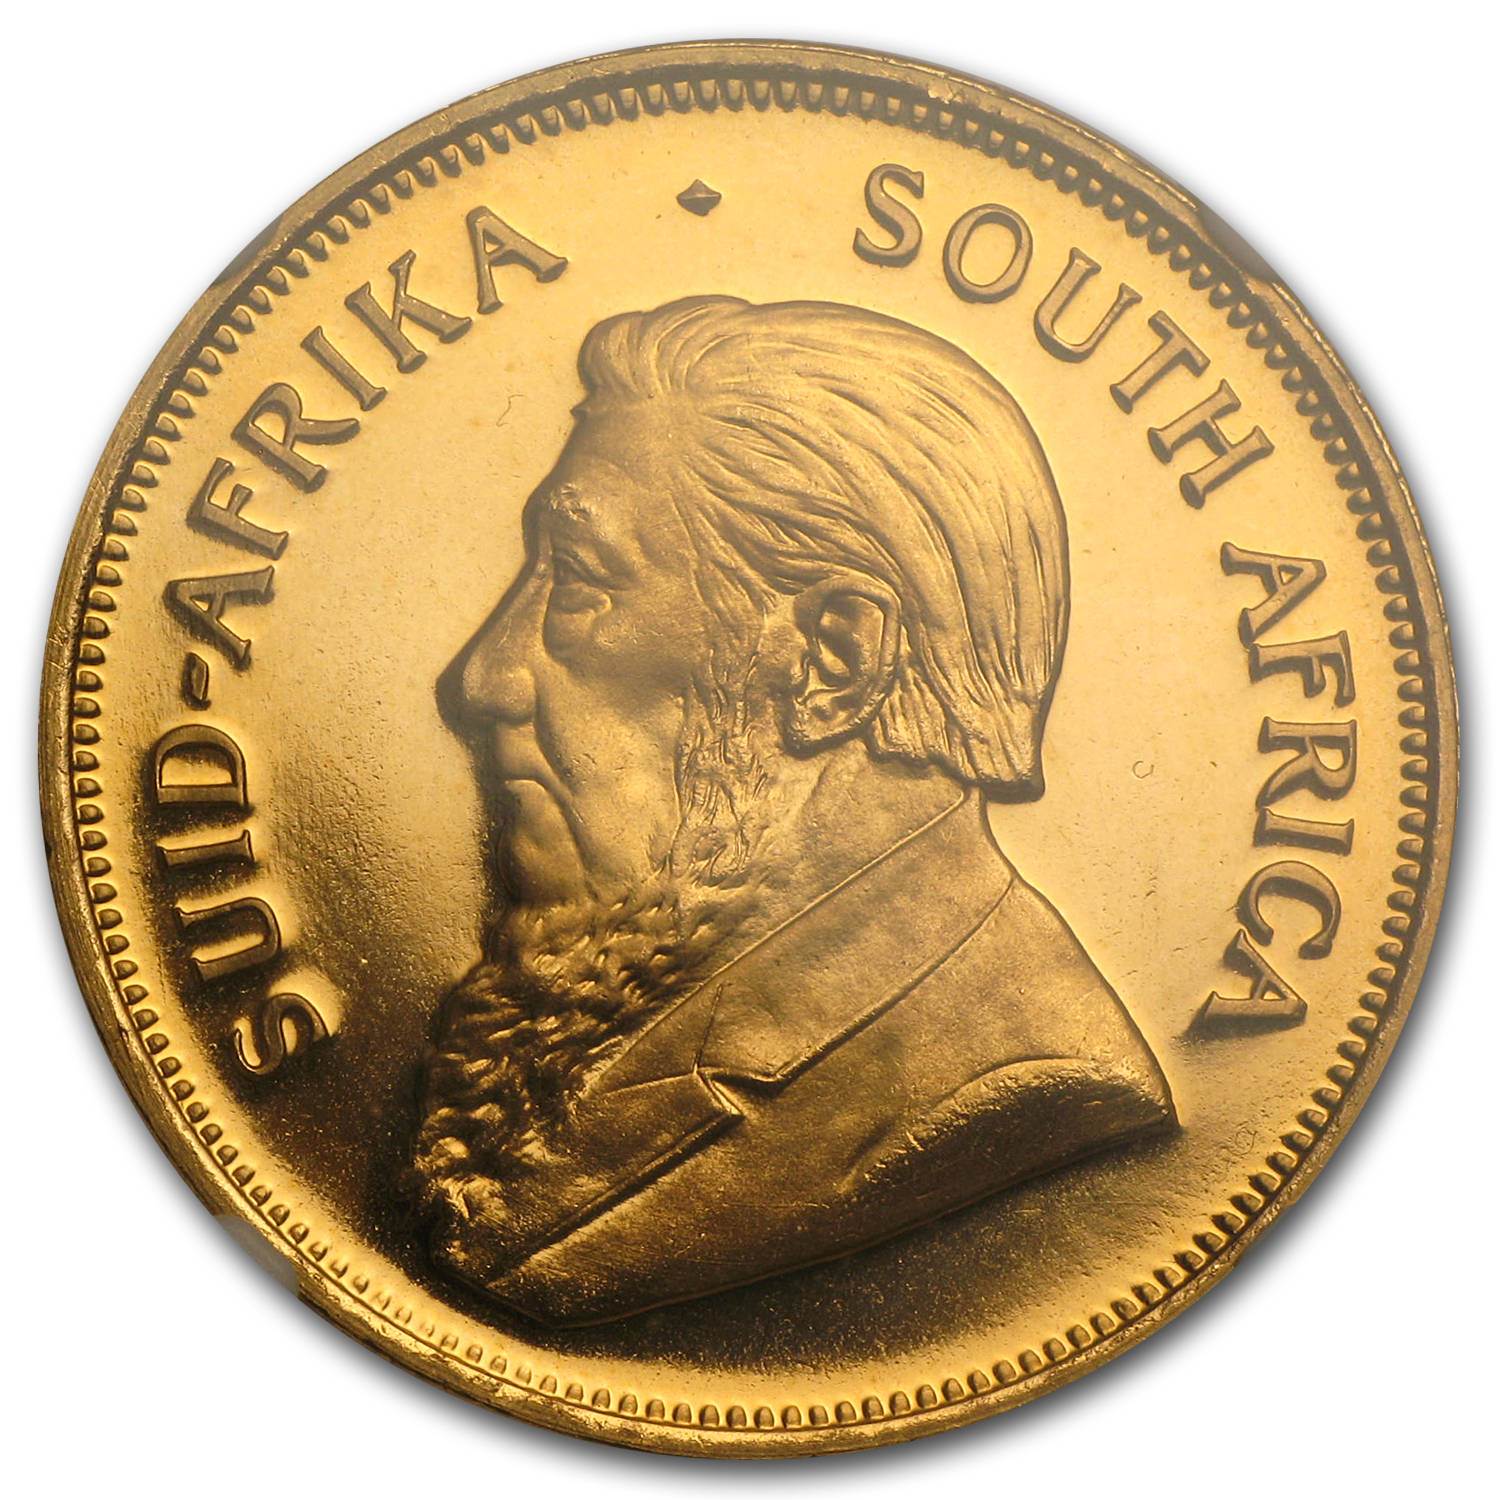 1971 1 oz Gold South African Krugerrand PF-67 UCAM NGC